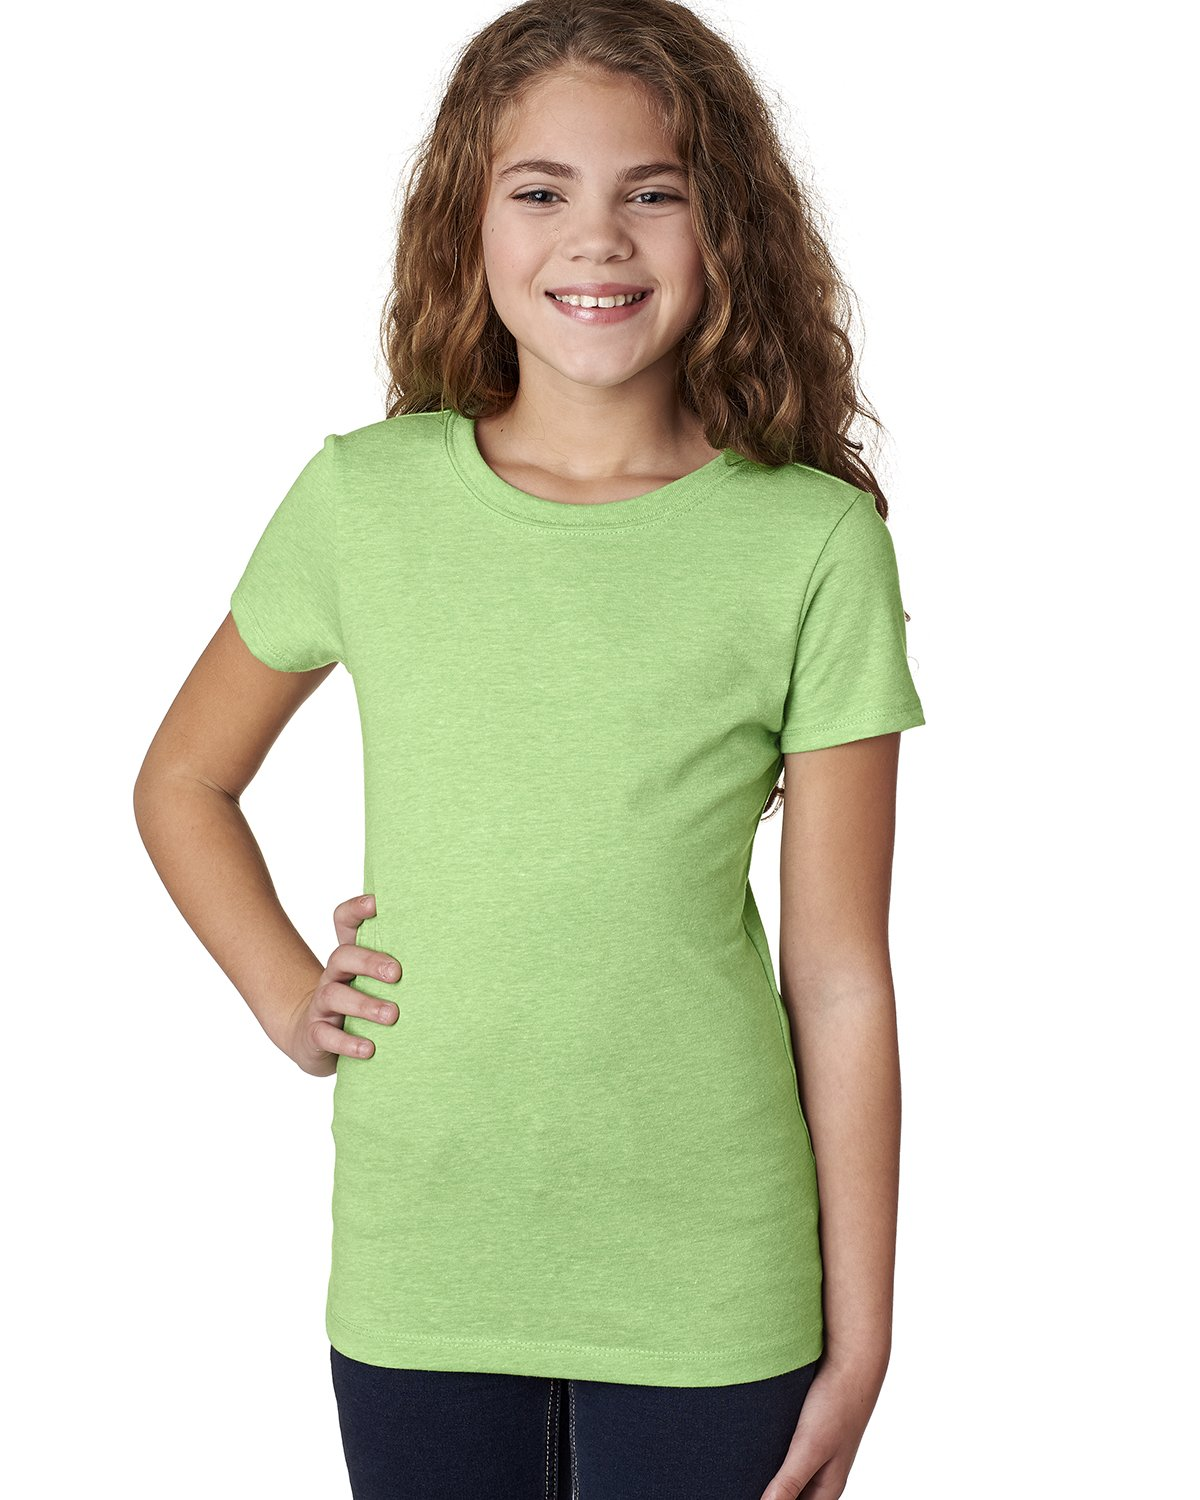 Next Level - 3712 - Youth Princess CVC T-Shirt